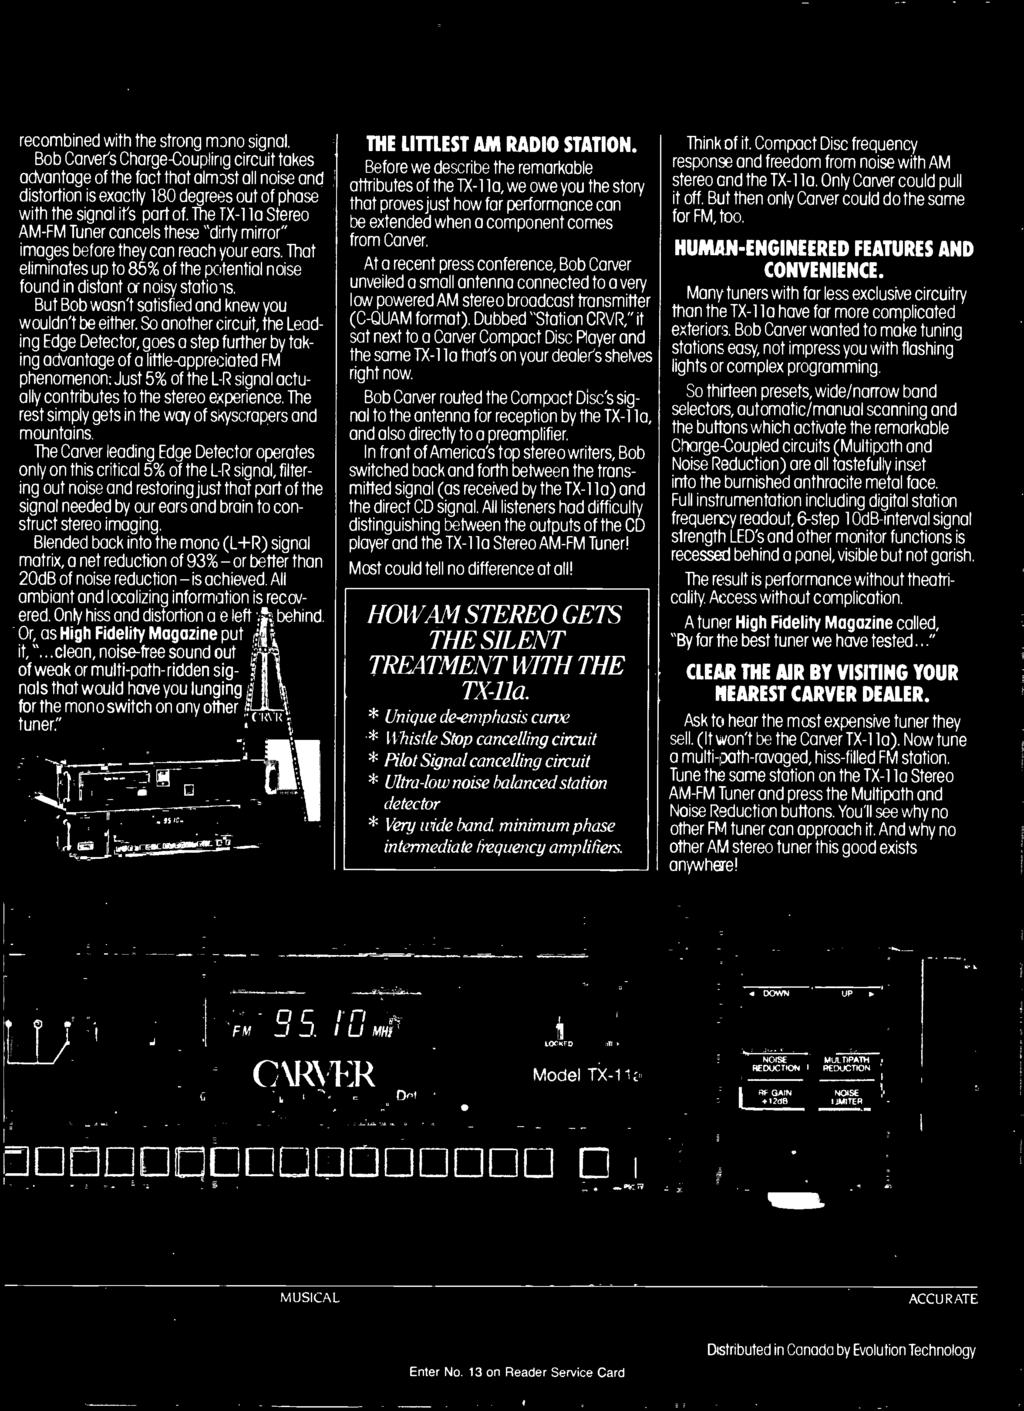 May 1986 Idinii Pdf Alfa Img Showing Gt Battery Eliminator Circuit So Another The Leading Edge Detector Goes A Step Further By Taking Advantage